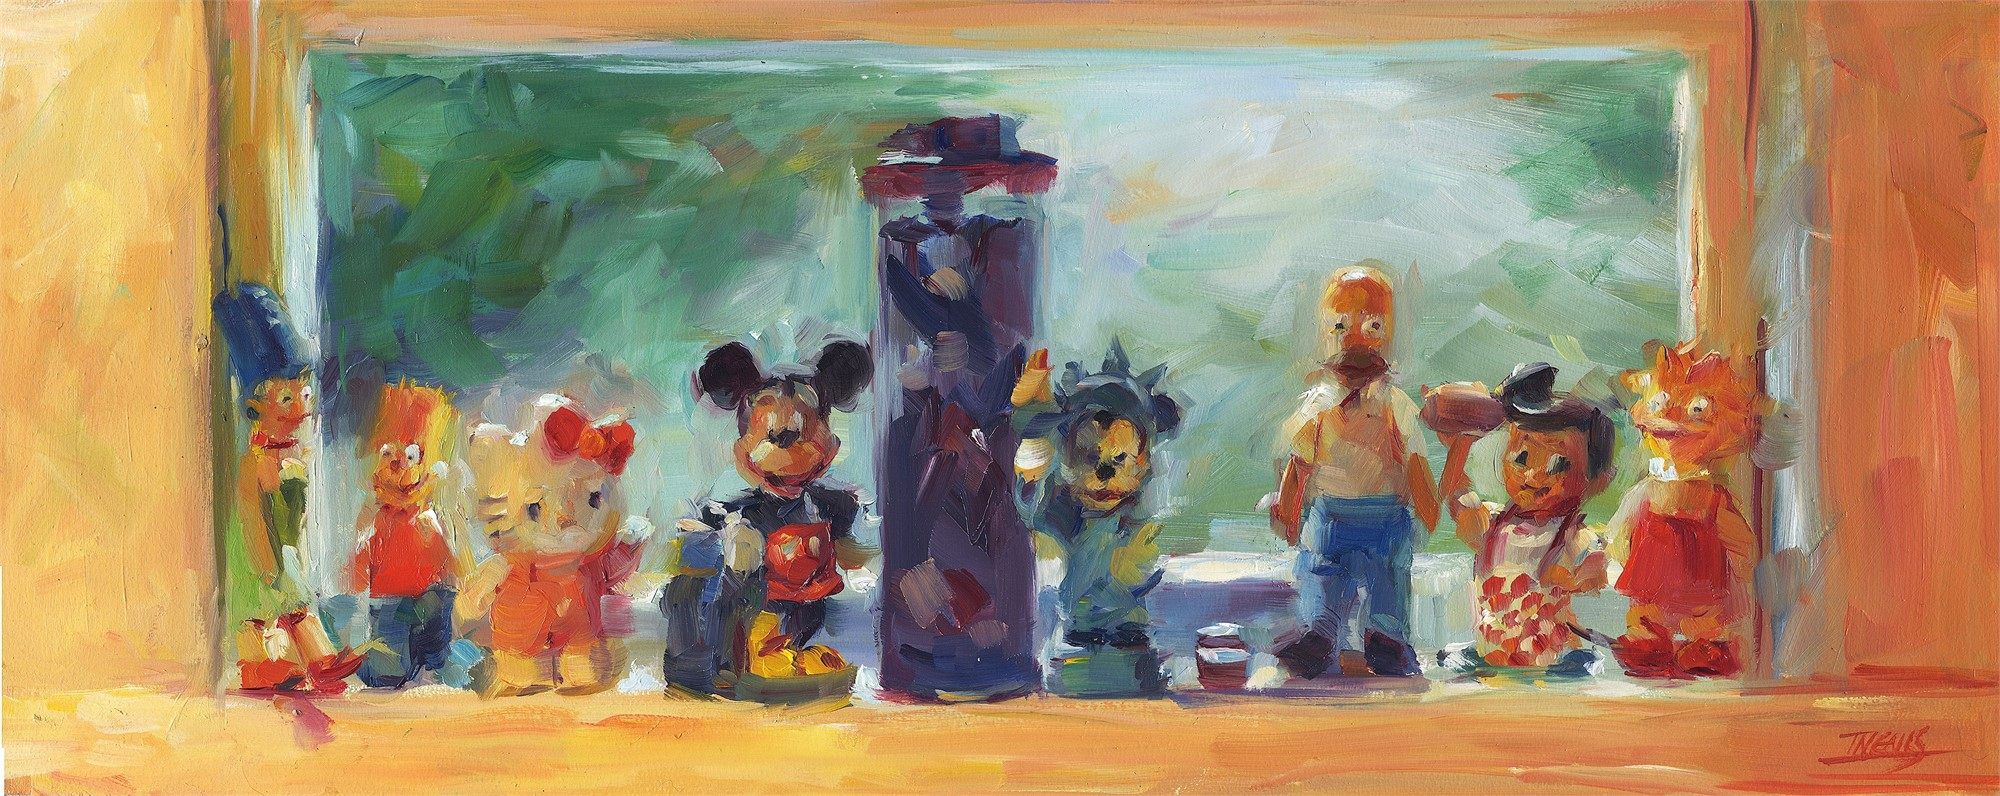 Kitchen Characters by Pam Ingalls